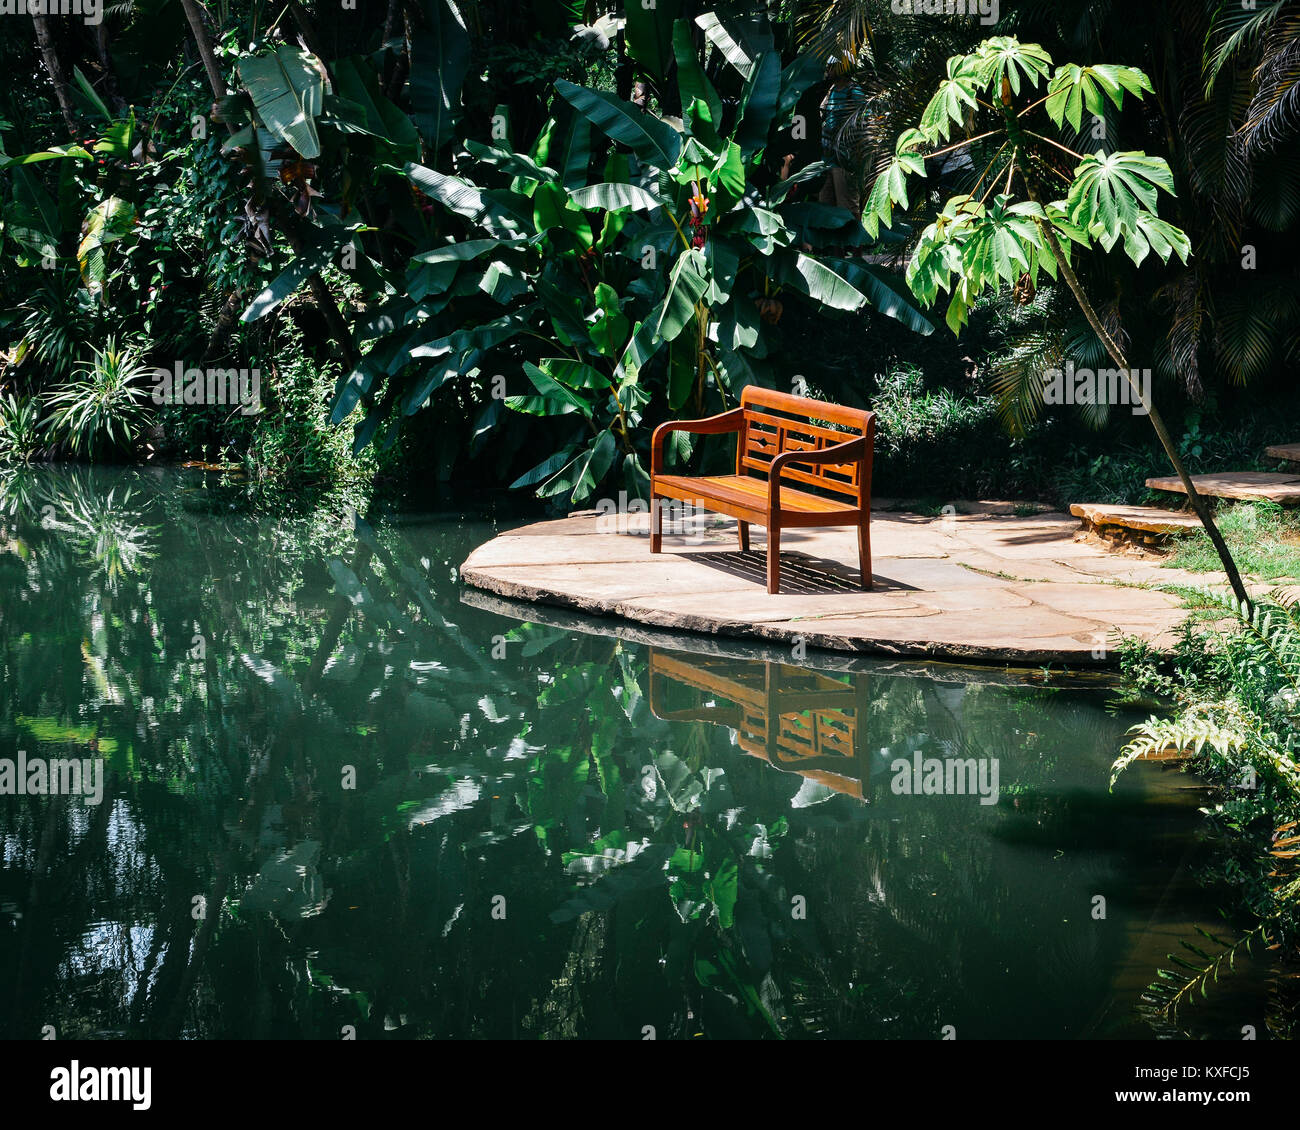 bench-in-tropical-florest-KXFCJ5.jpg